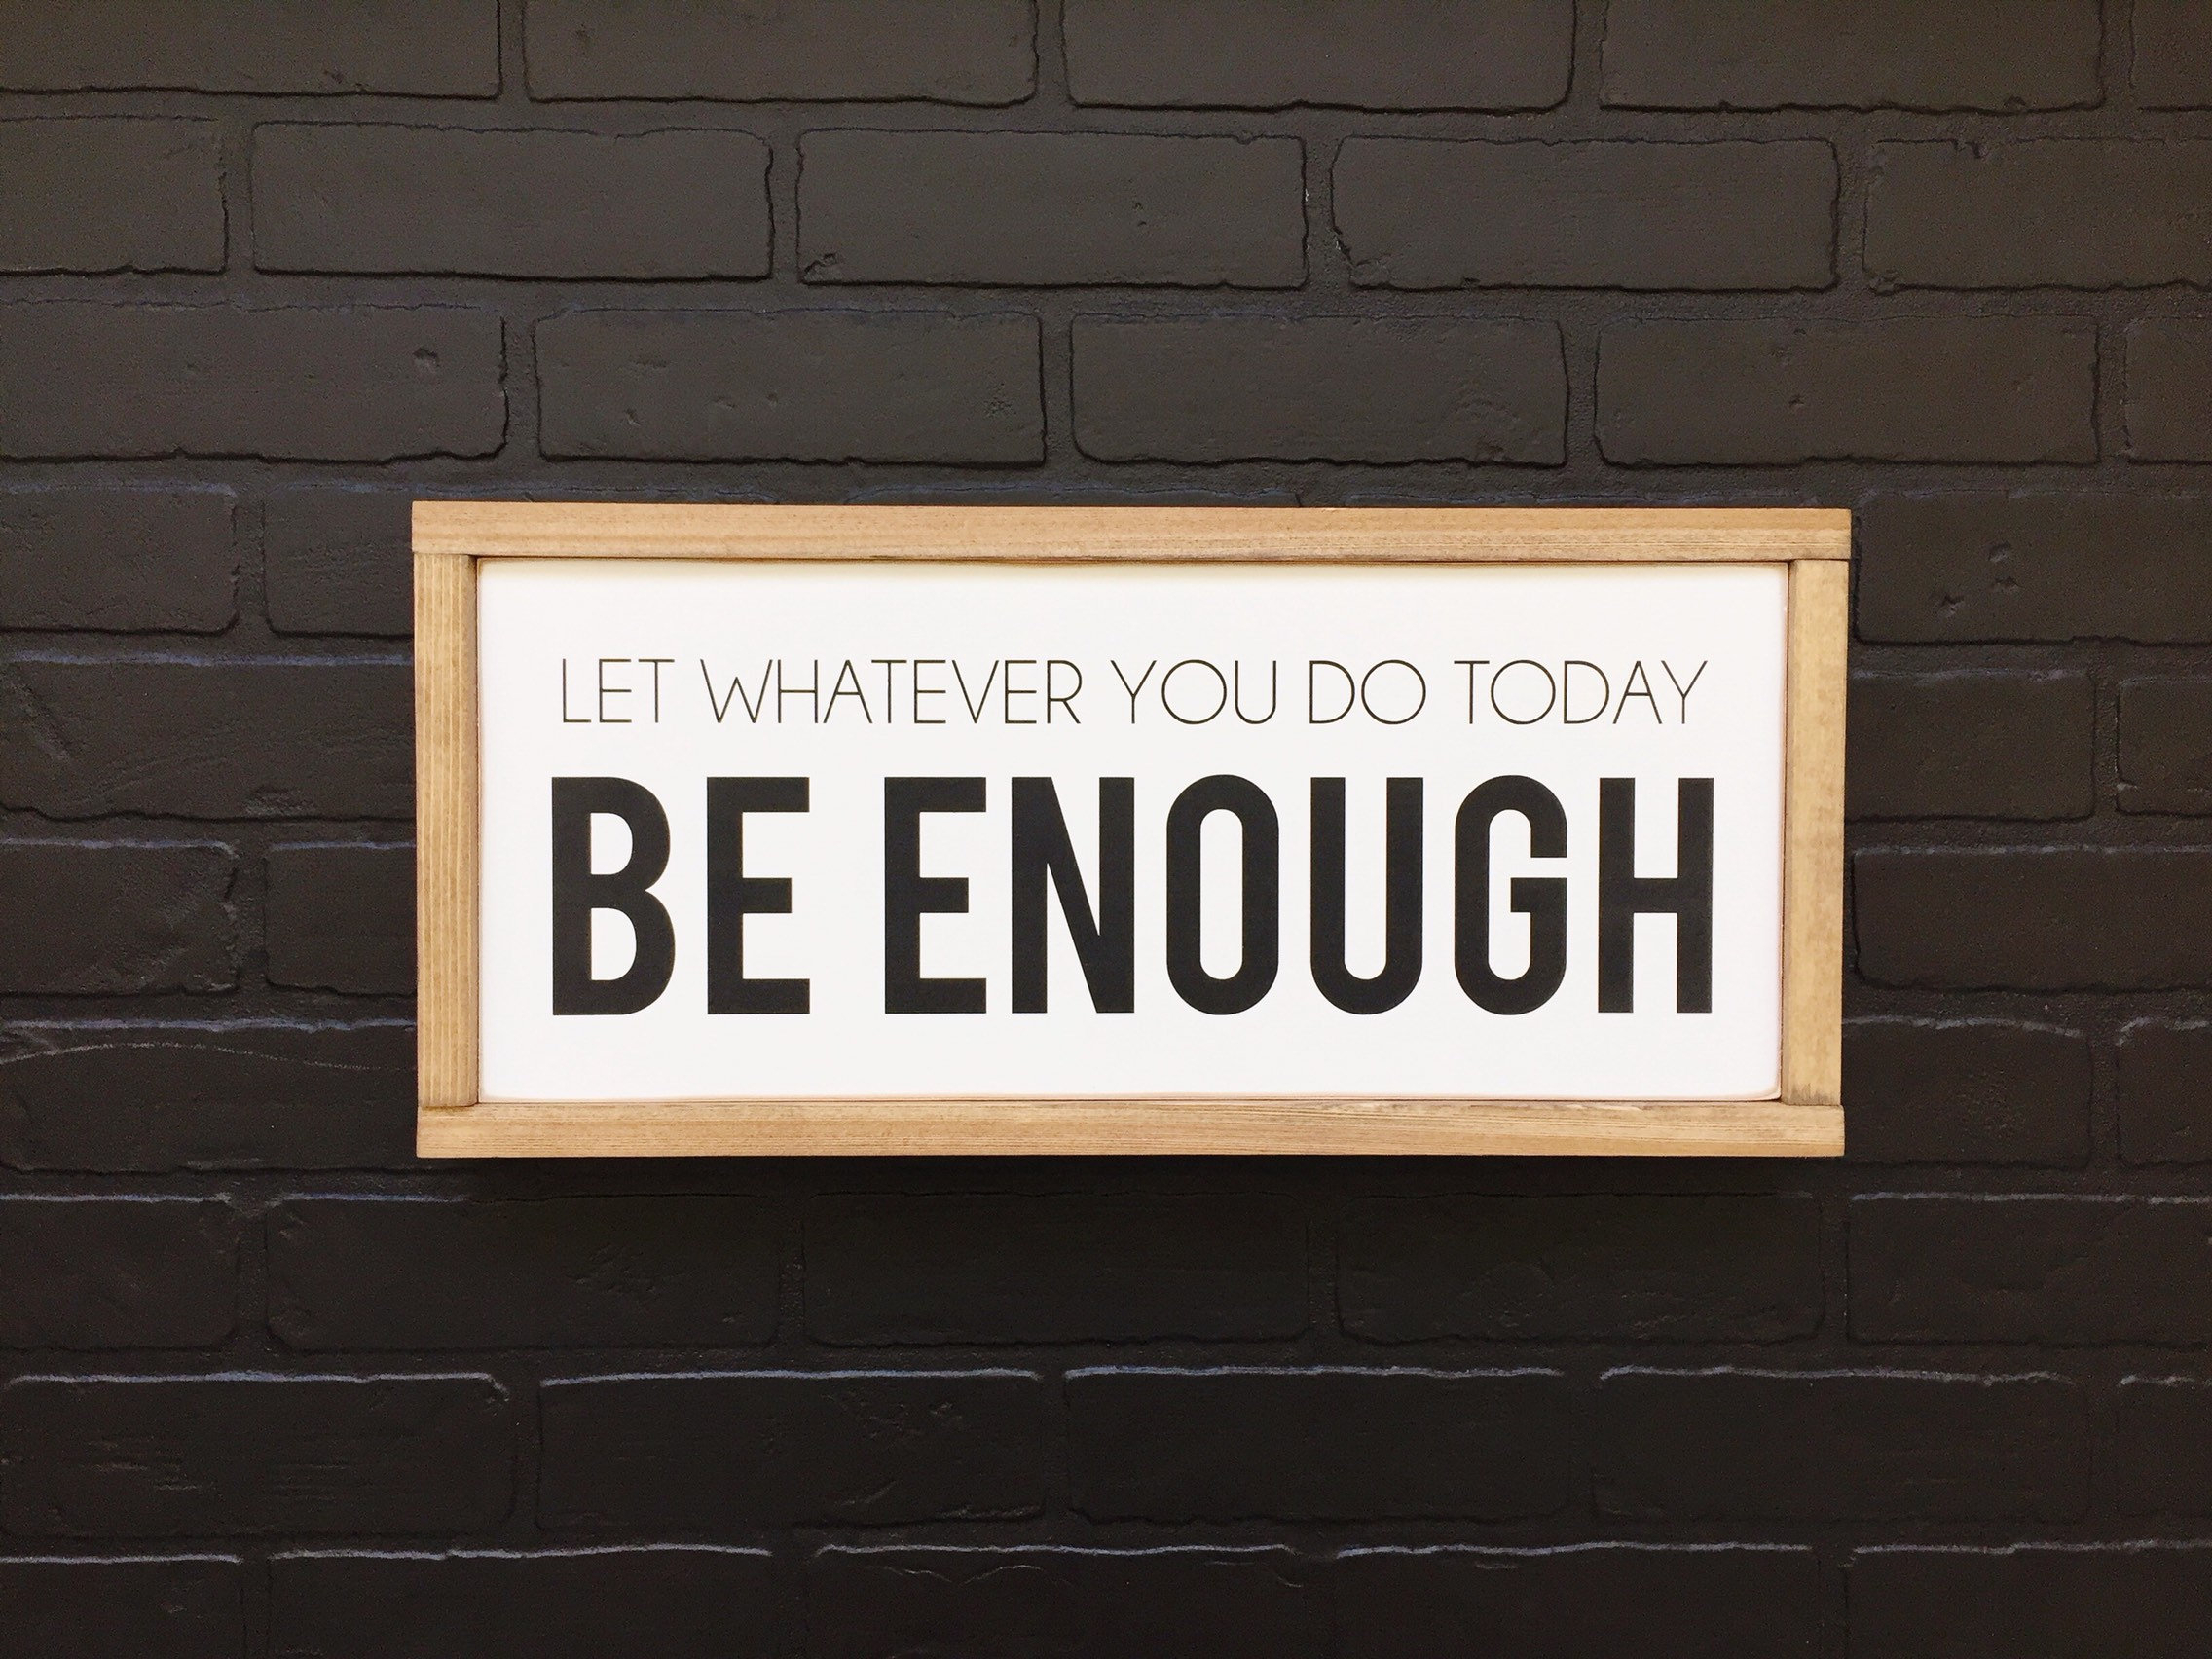 Best And Newest Let Whatever You Do Today Be Enough Wood Wall Decor With Regard To Let Whatever You Do Today Be Enough Sign 9 X 21 (Gallery 5 of 20)